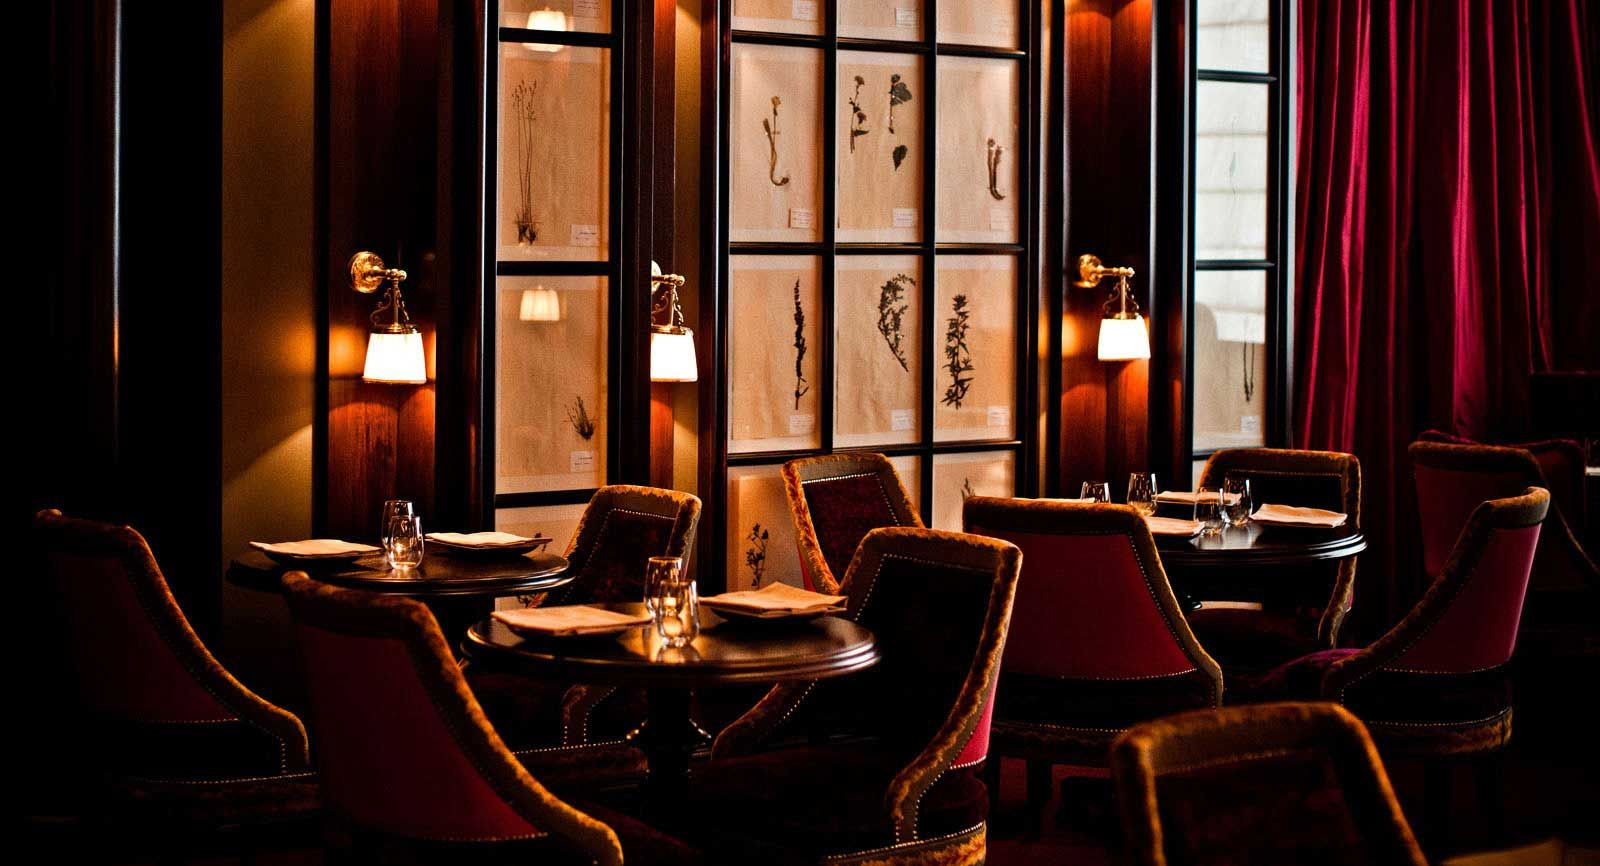 nomad hotel of new york city guide new york city guide NEW YORK CITY GUIDE nomad 5